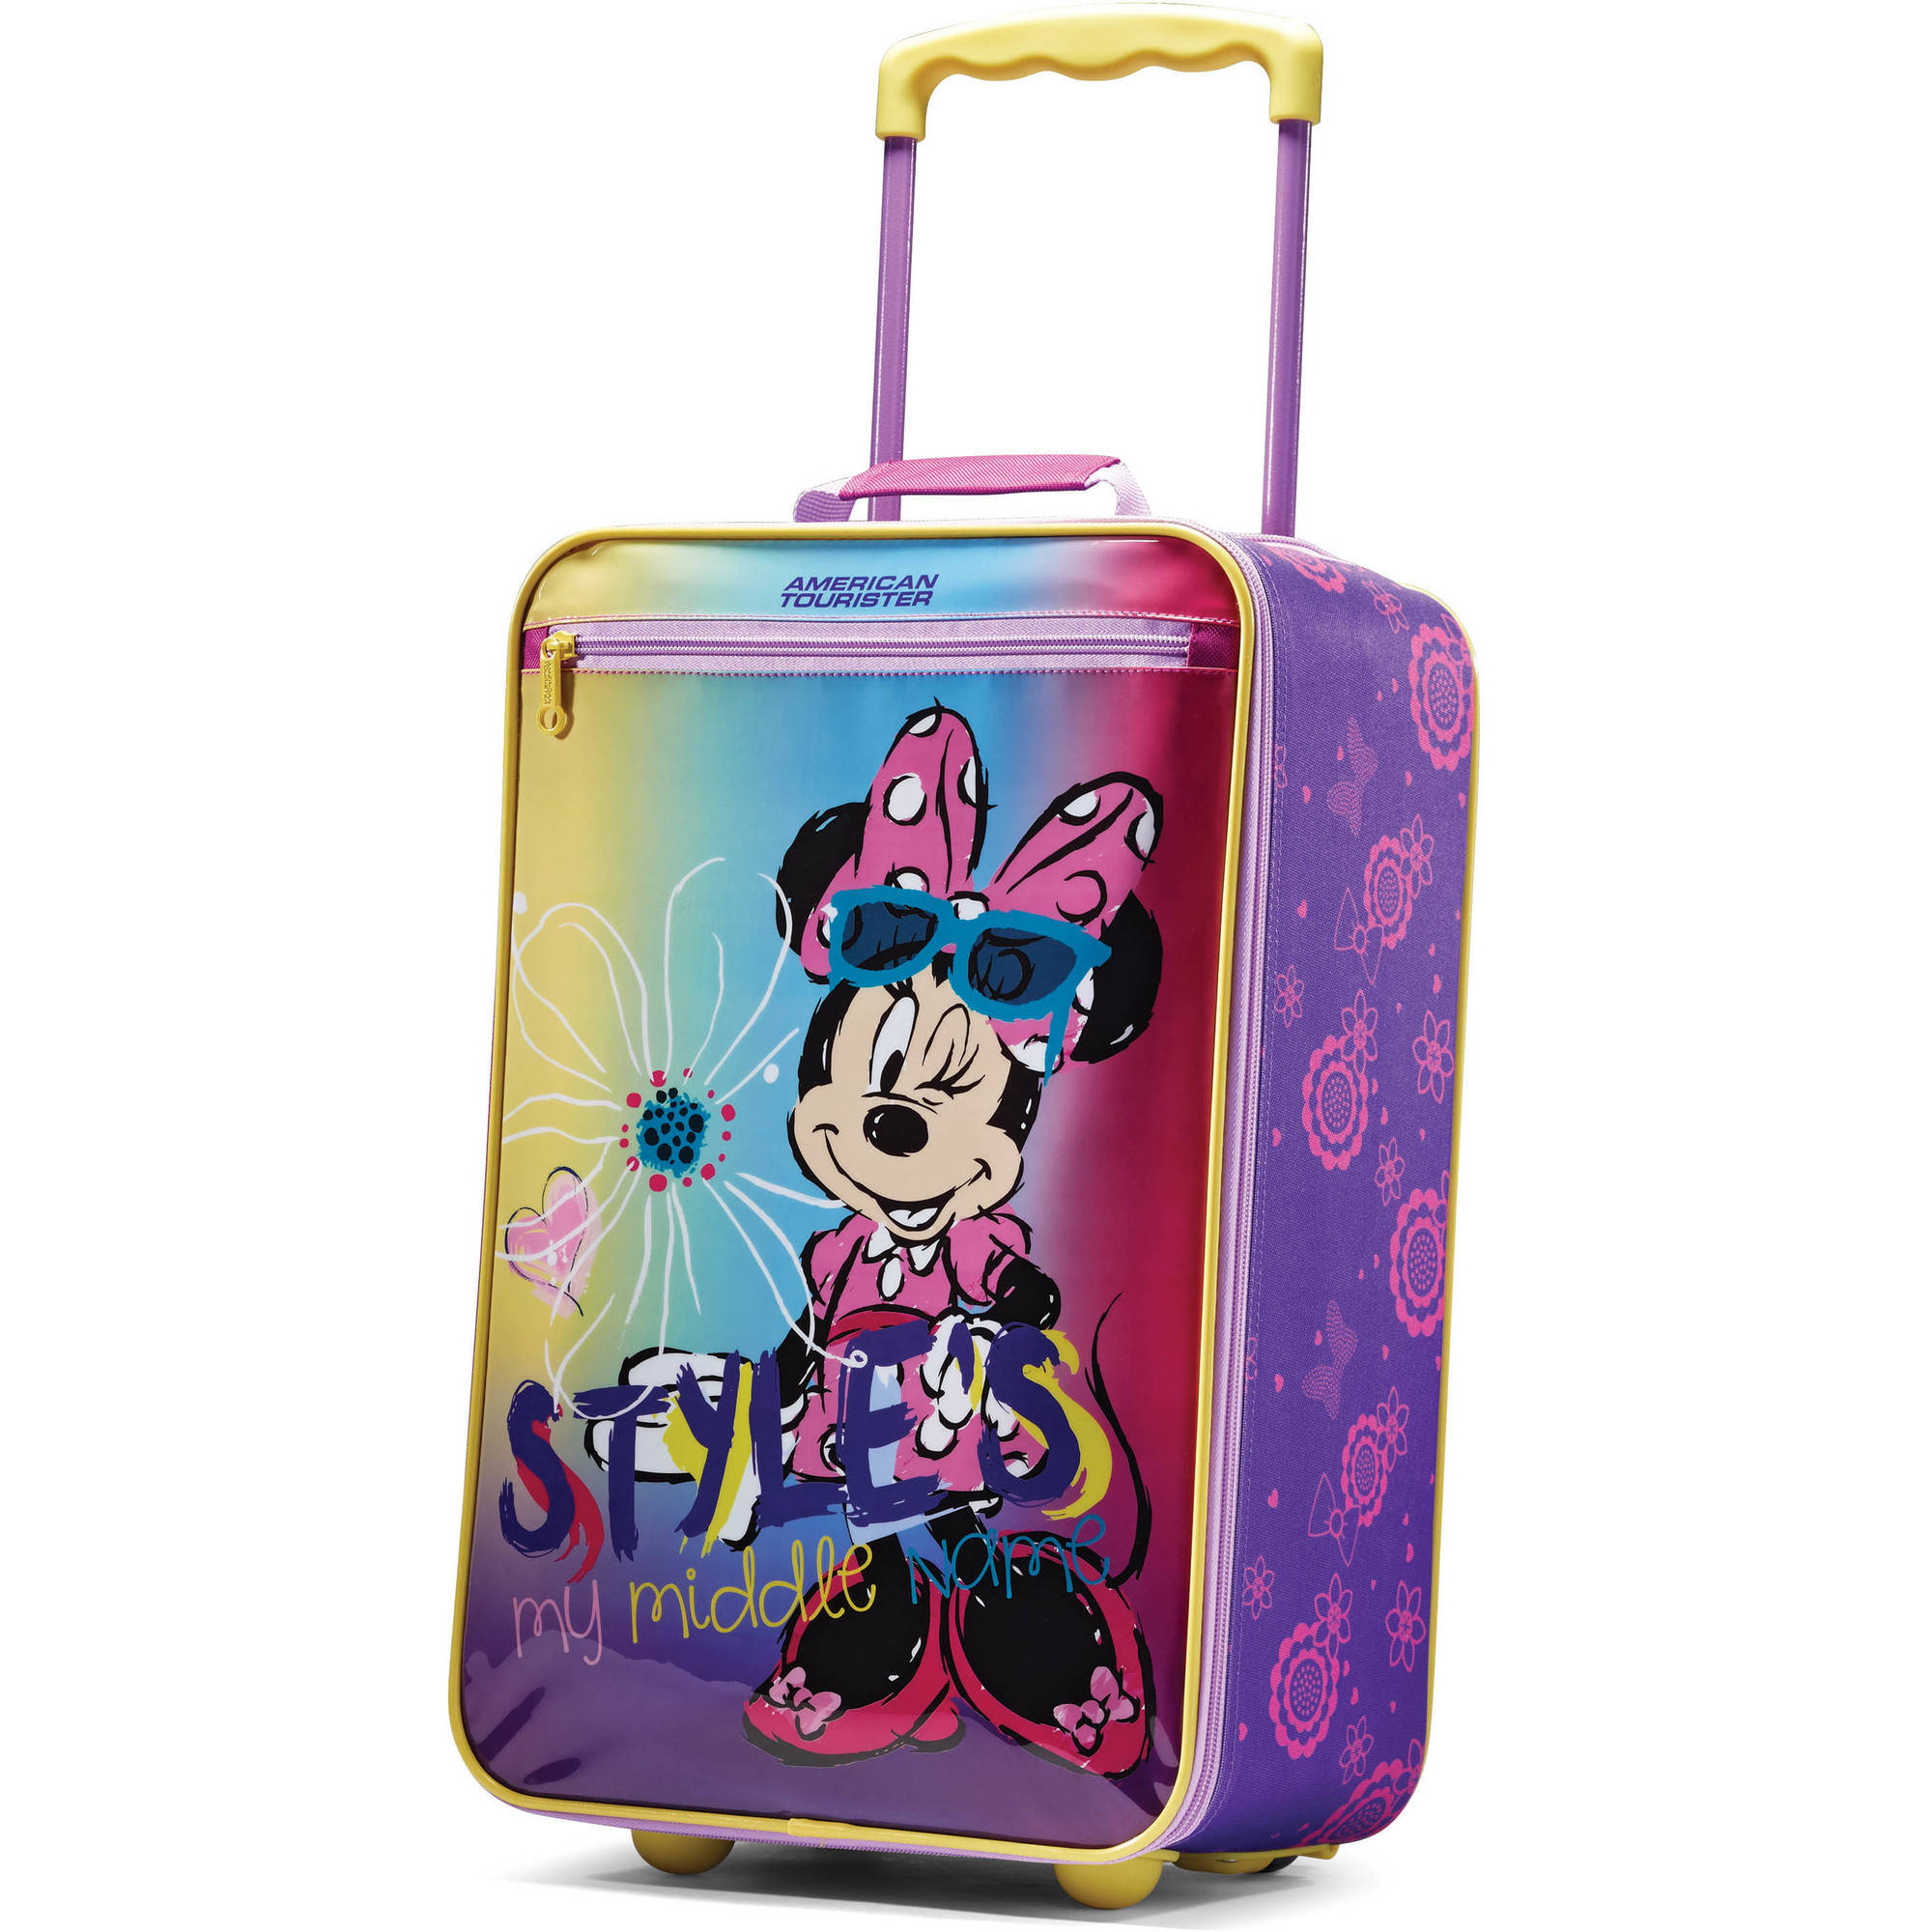 "American Tourister 18"" Disney Minnie Softside Upright Suitcase"